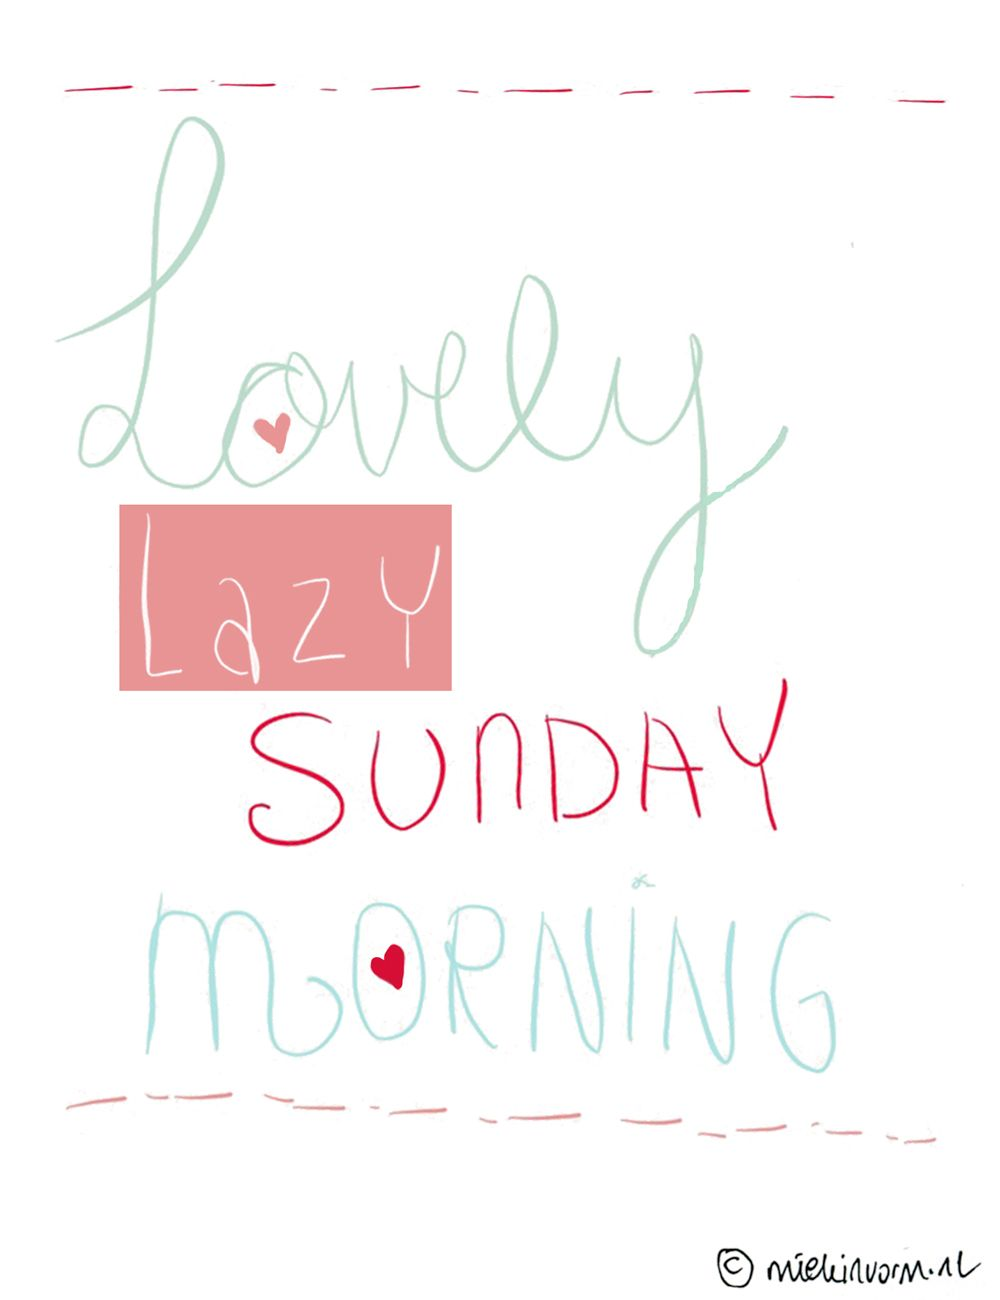 Have a lovely lazy sunday morning! We will here at Match